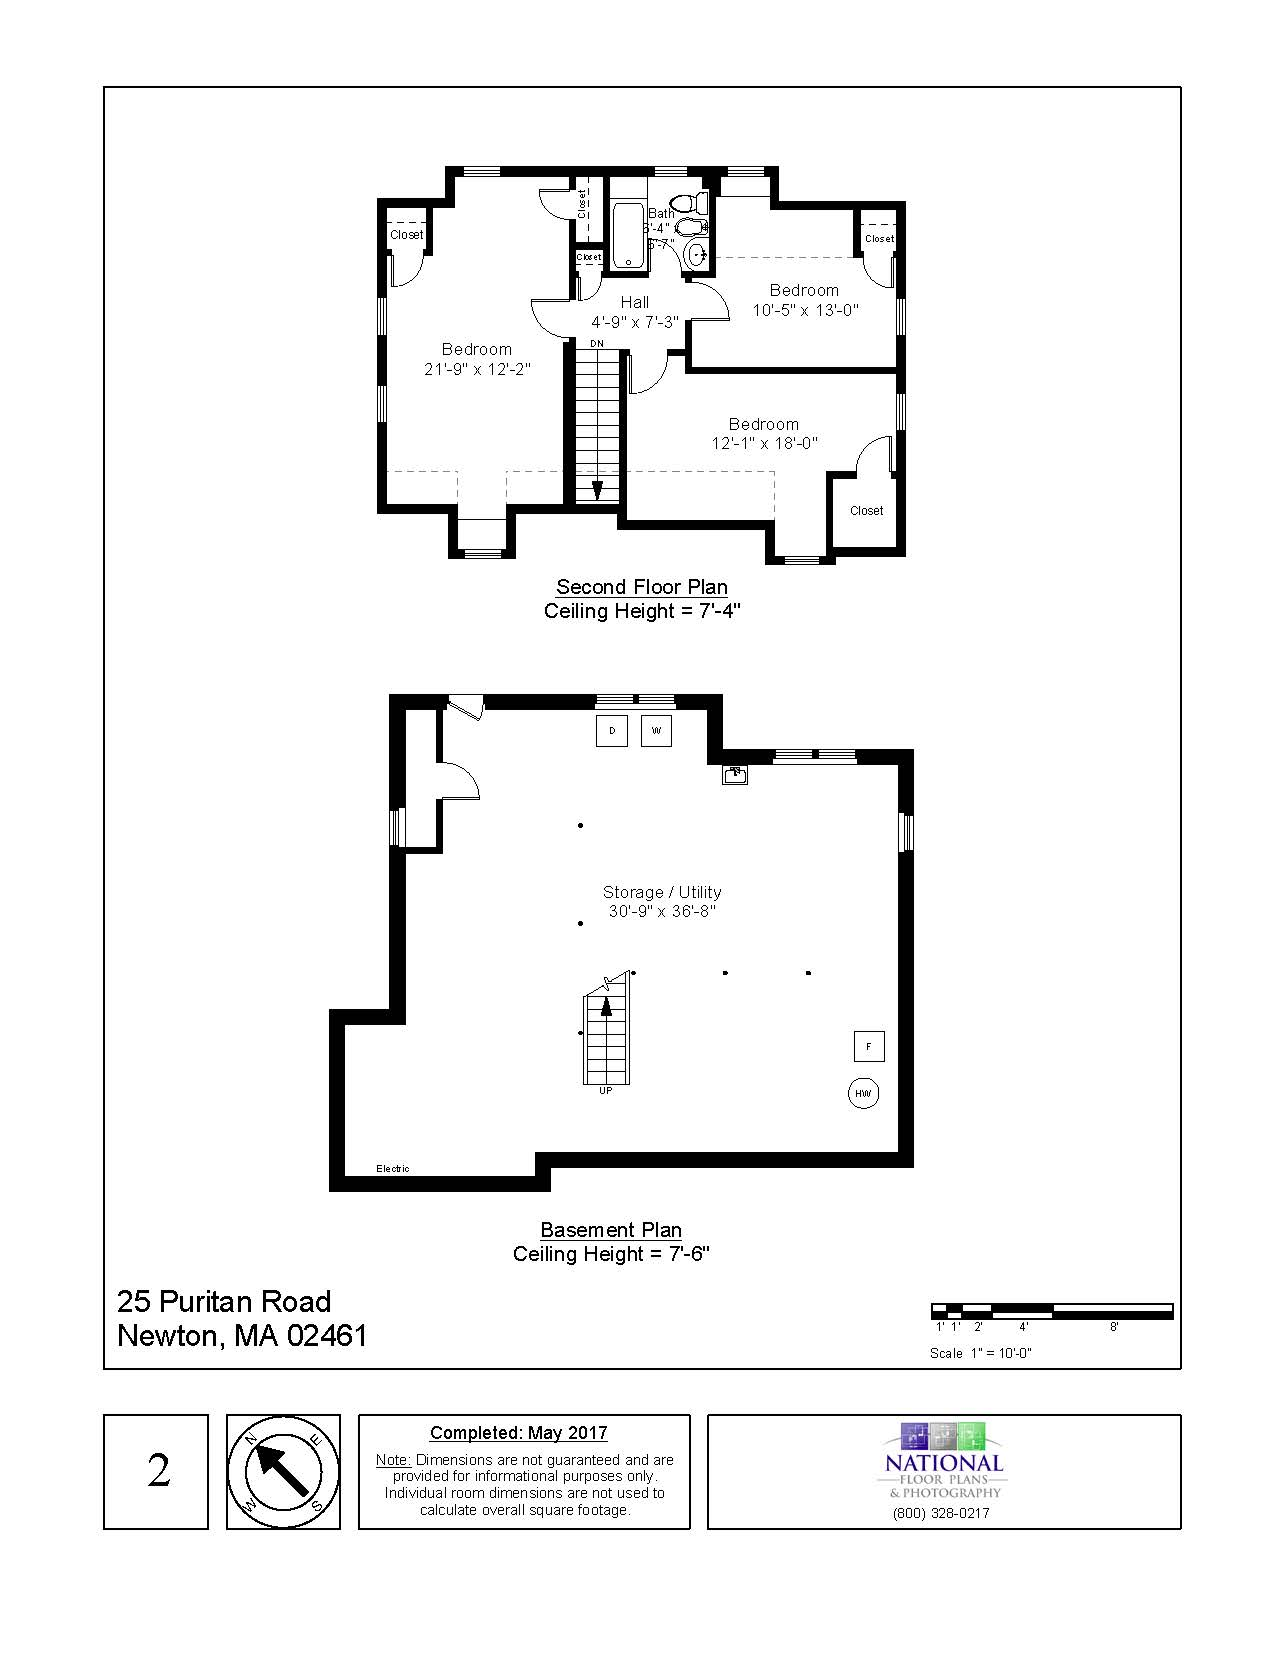 25 Puritan Road, Newton - Floor Plan